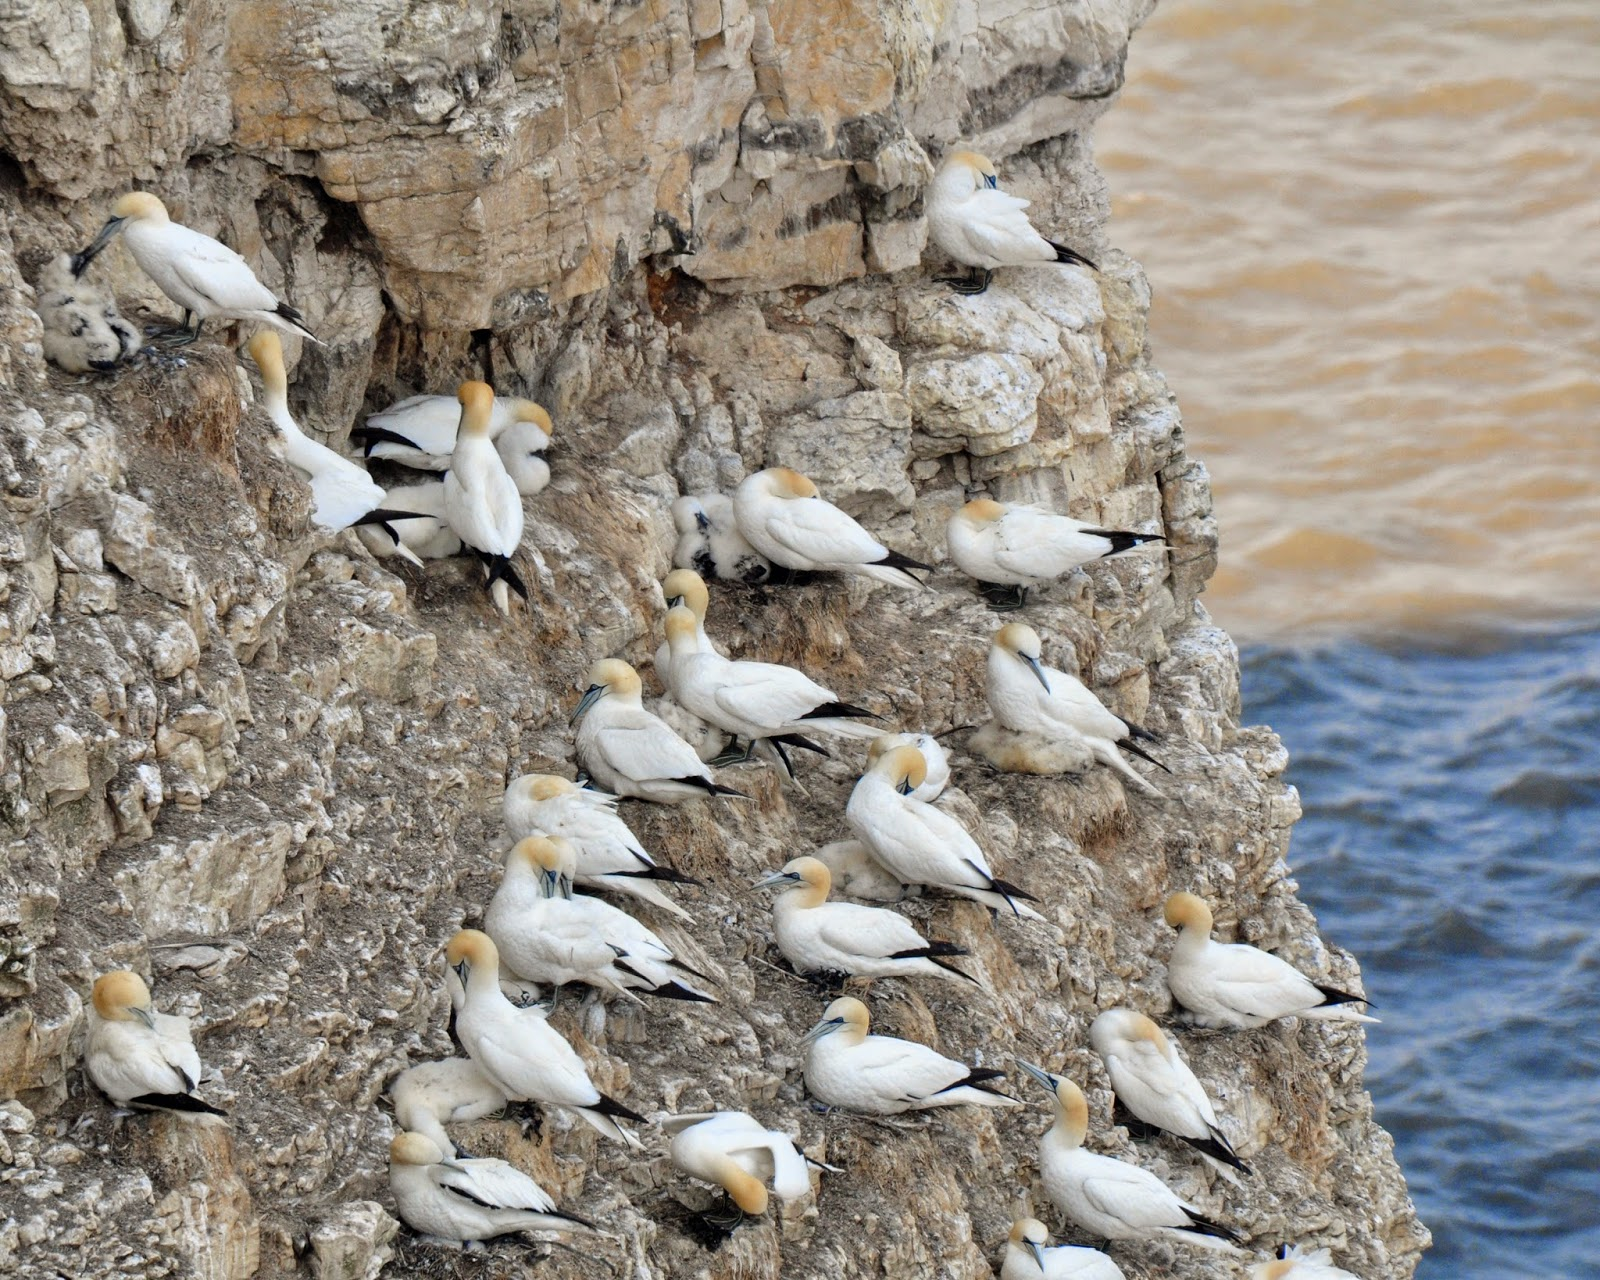 gannet colony at RSPB Bempton Cliffs